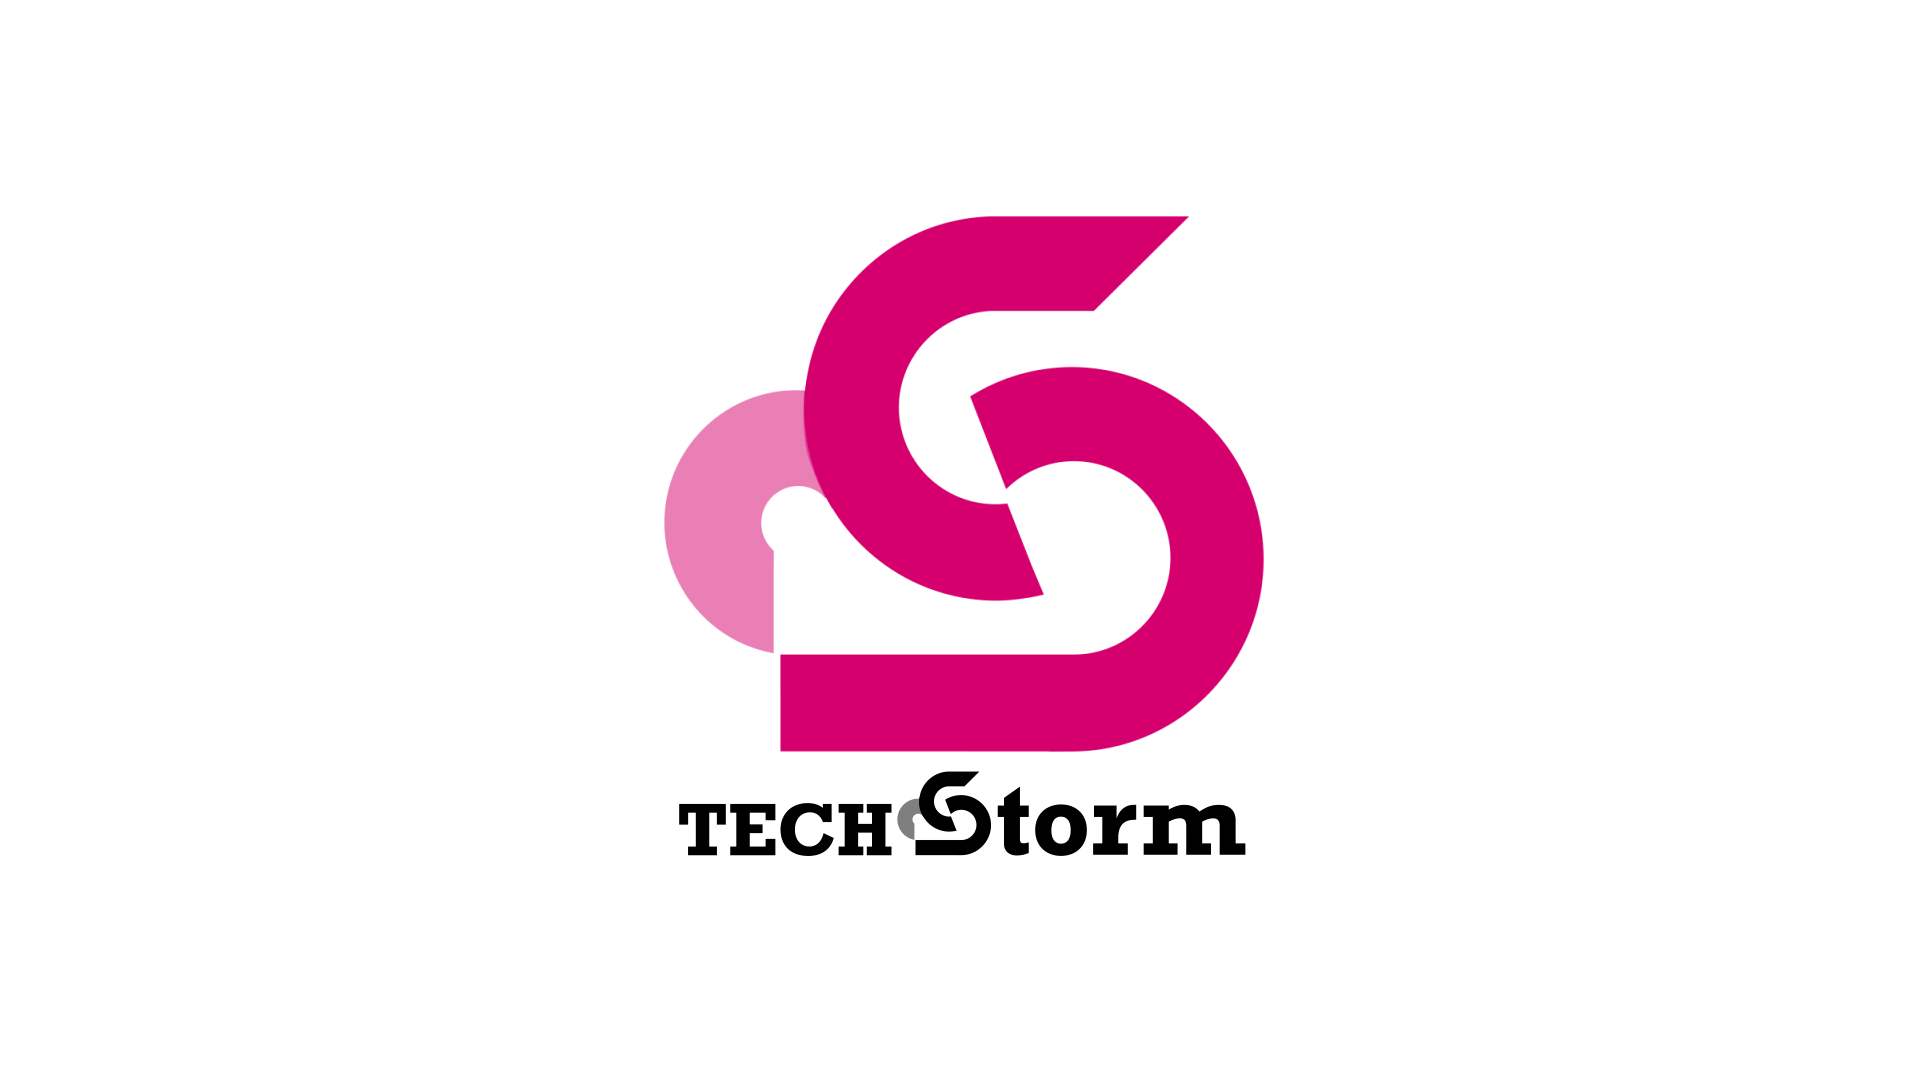 TechStorm grows at meteoric speed as it closes Series A fund raising